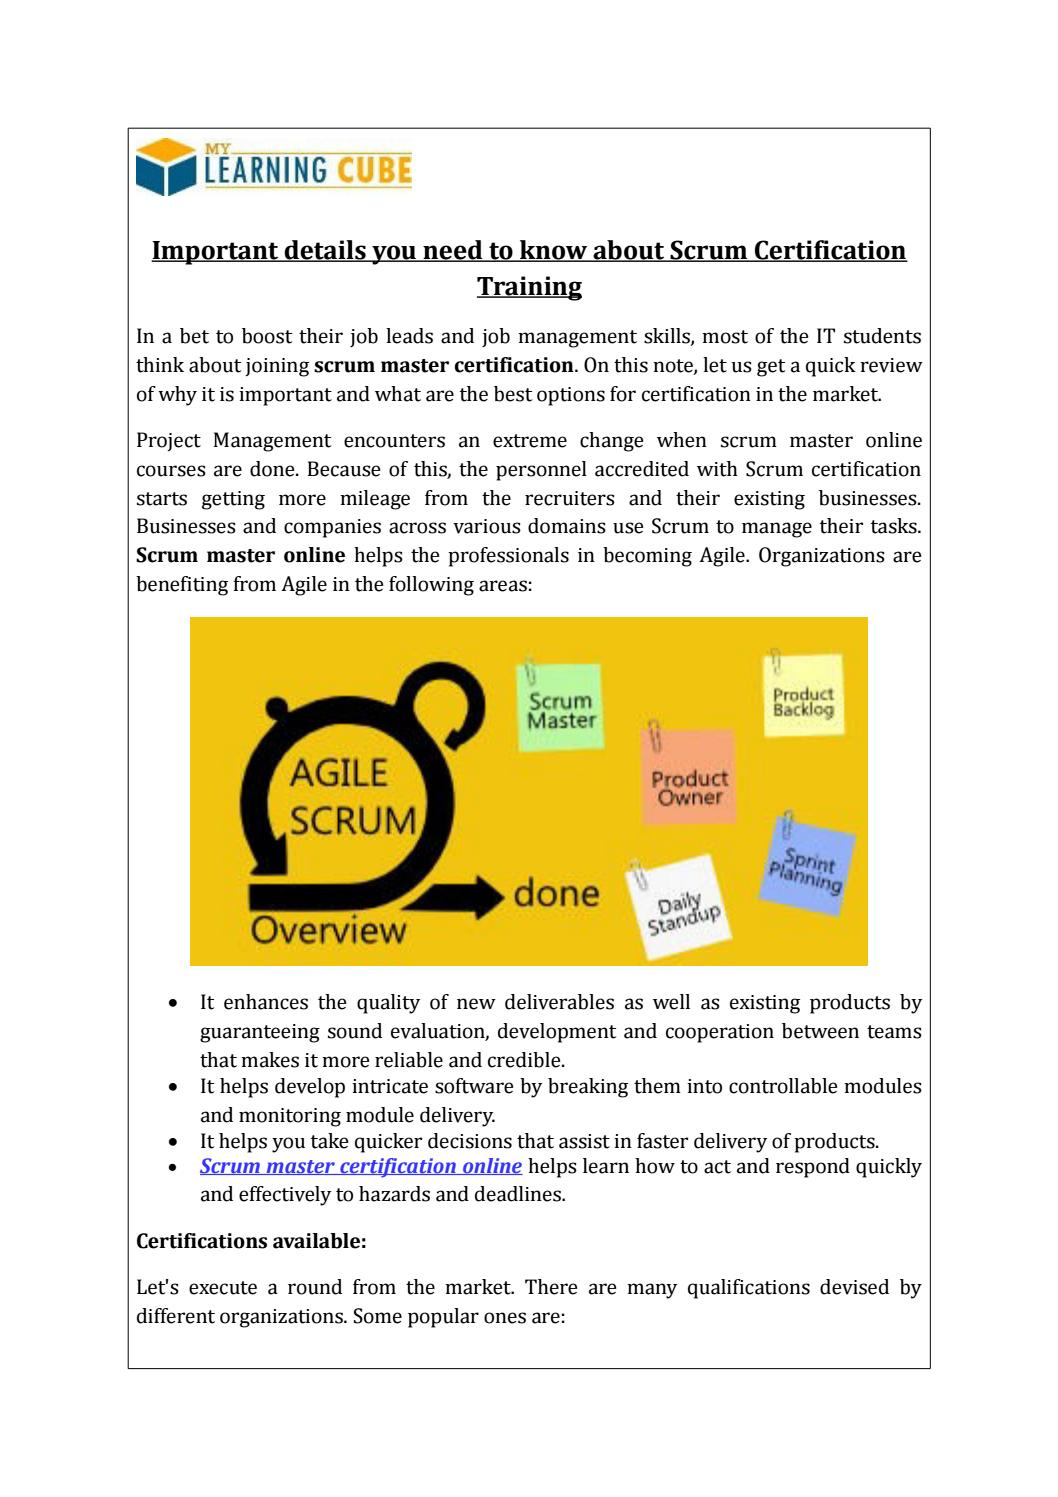 Online scrum master certification mylearningcube by mylearningcube online scrum master certification mylearningcube by mylearningcube issuu 1betcityfo Choice Image